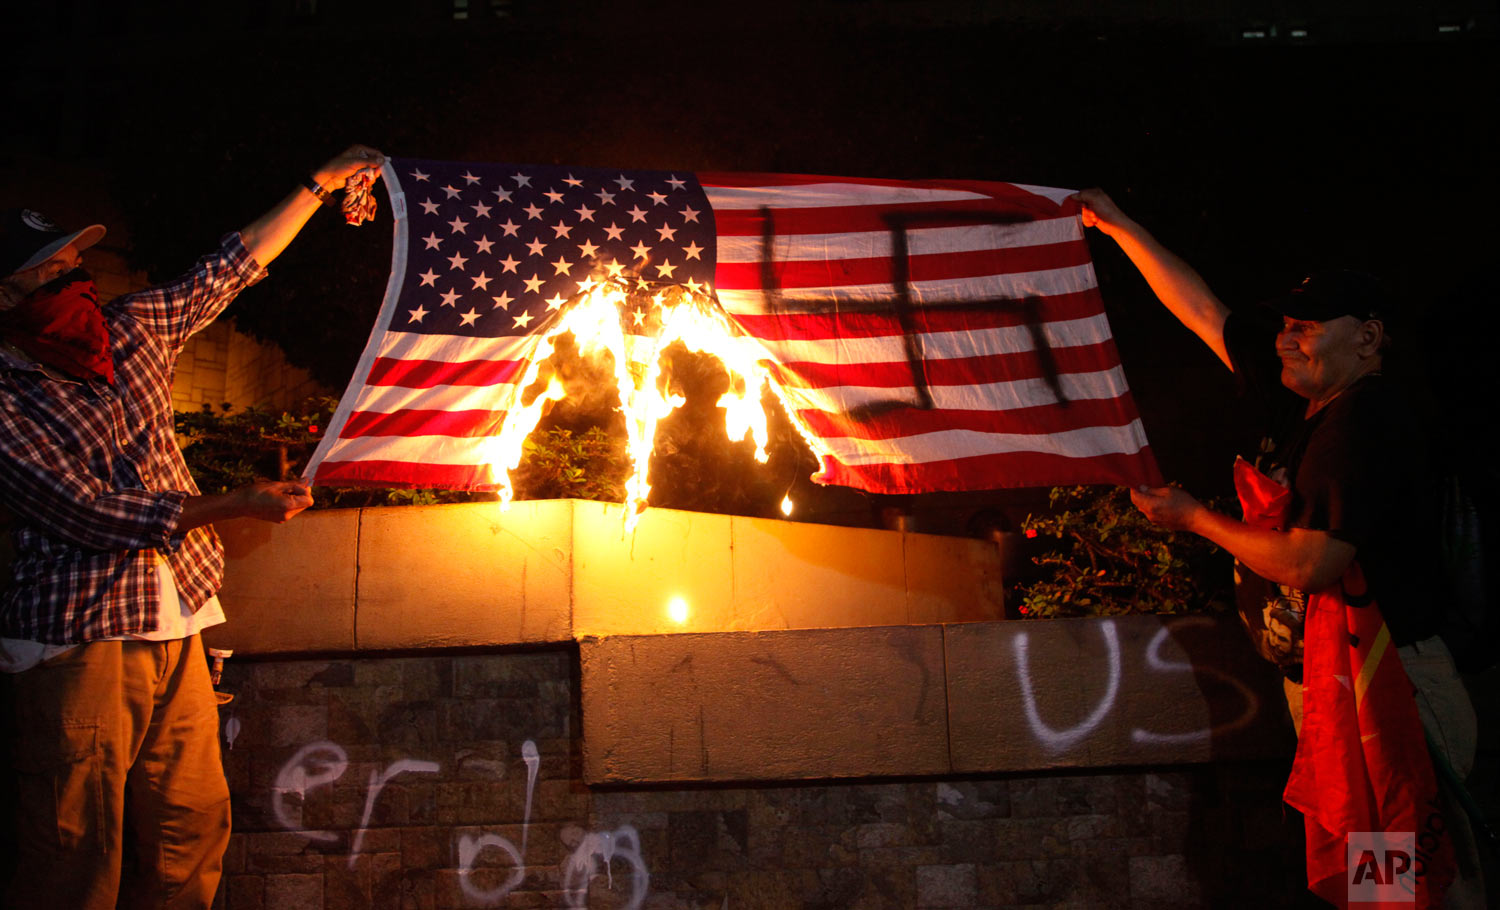 People burn a U.S. flag outside the U.S. embassy to protest in favor of the migrant caravan stuck on the Guatemala-Mexico border, in Tegucigalpa, Honduras, Oct. 19, 2018. (AP Photo/Fernando Antonio)